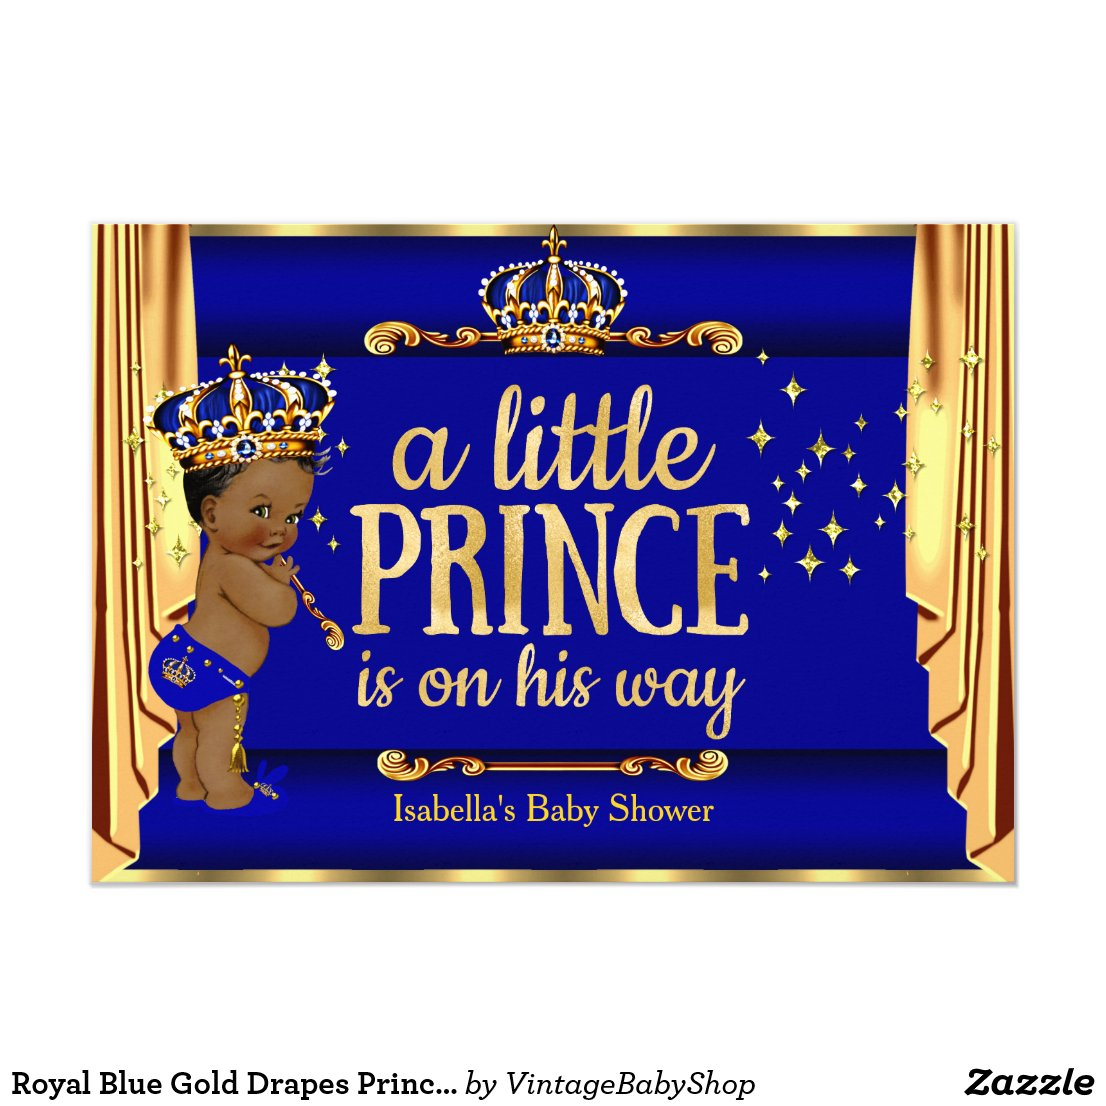 Royal Blue Gold Drapes Prince Baby Shower Ethnic